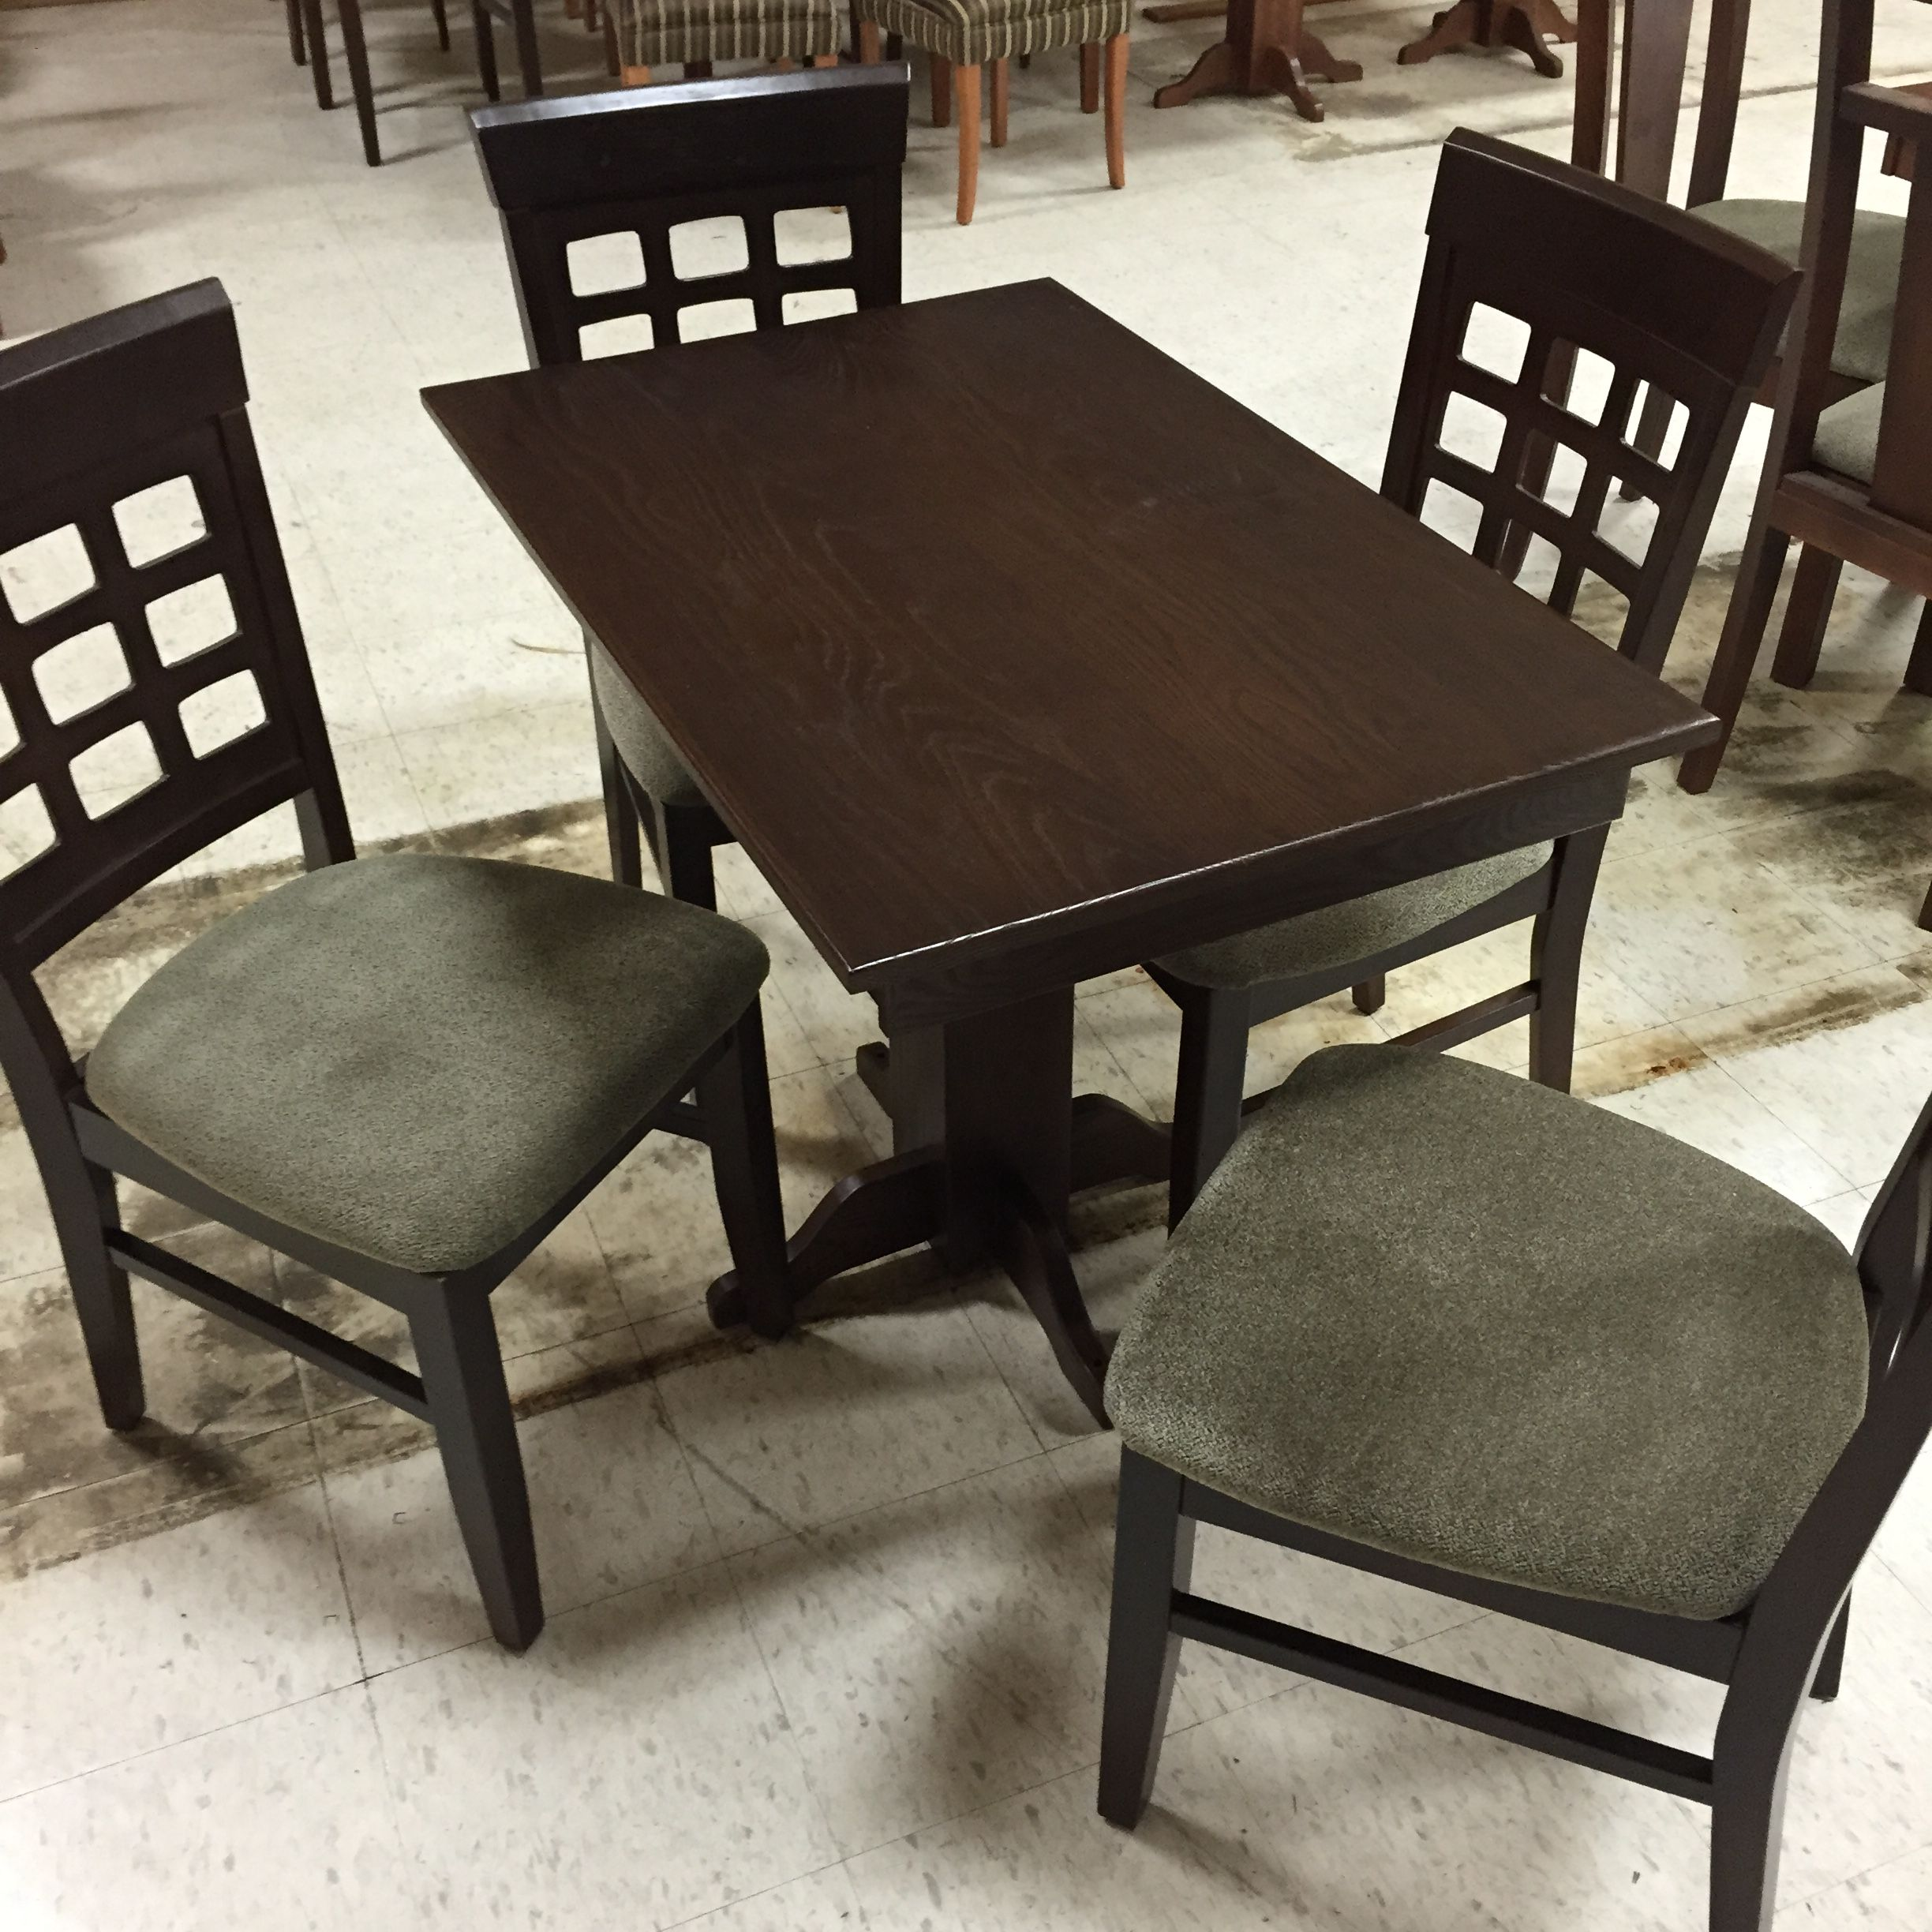 Phenomenal High End Table And Chairs For Your Rv Or Your Home Table Interior Design Ideas Tzicisoteloinfo